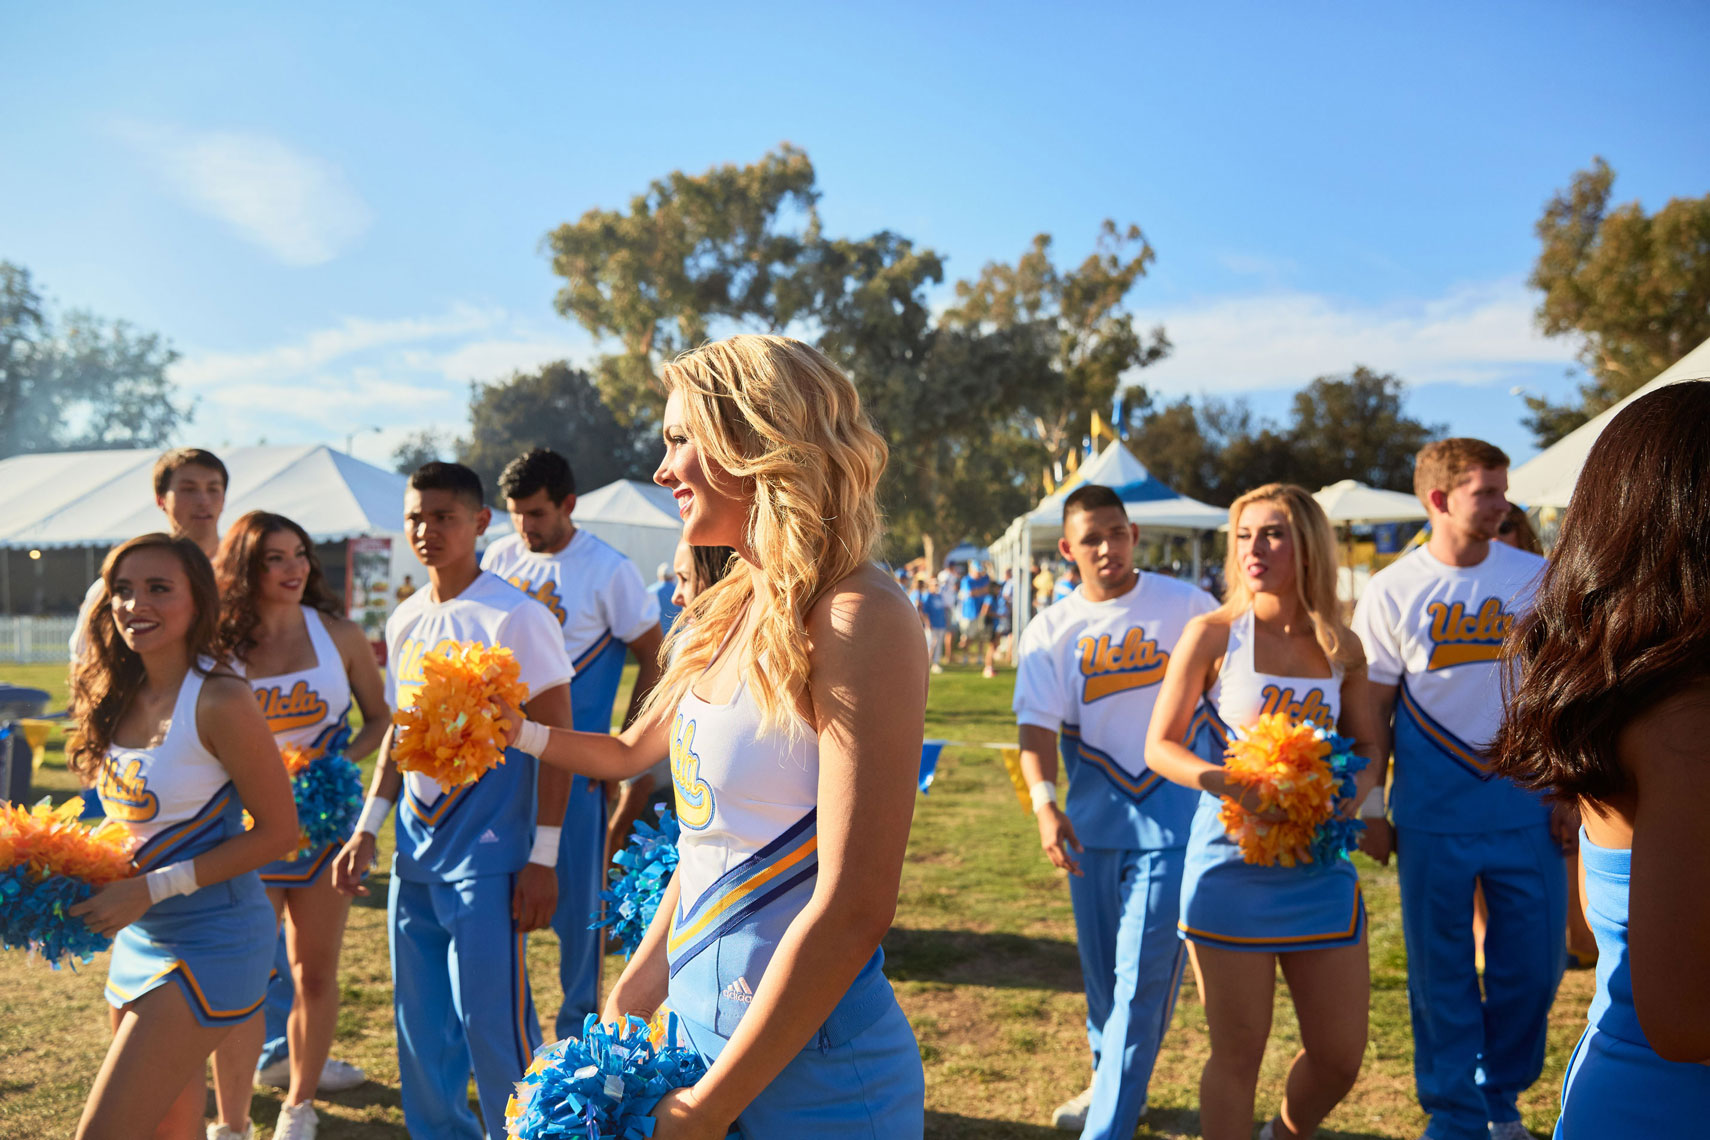 141004_UCLA_GAMEDAY_2C1B0083_OG